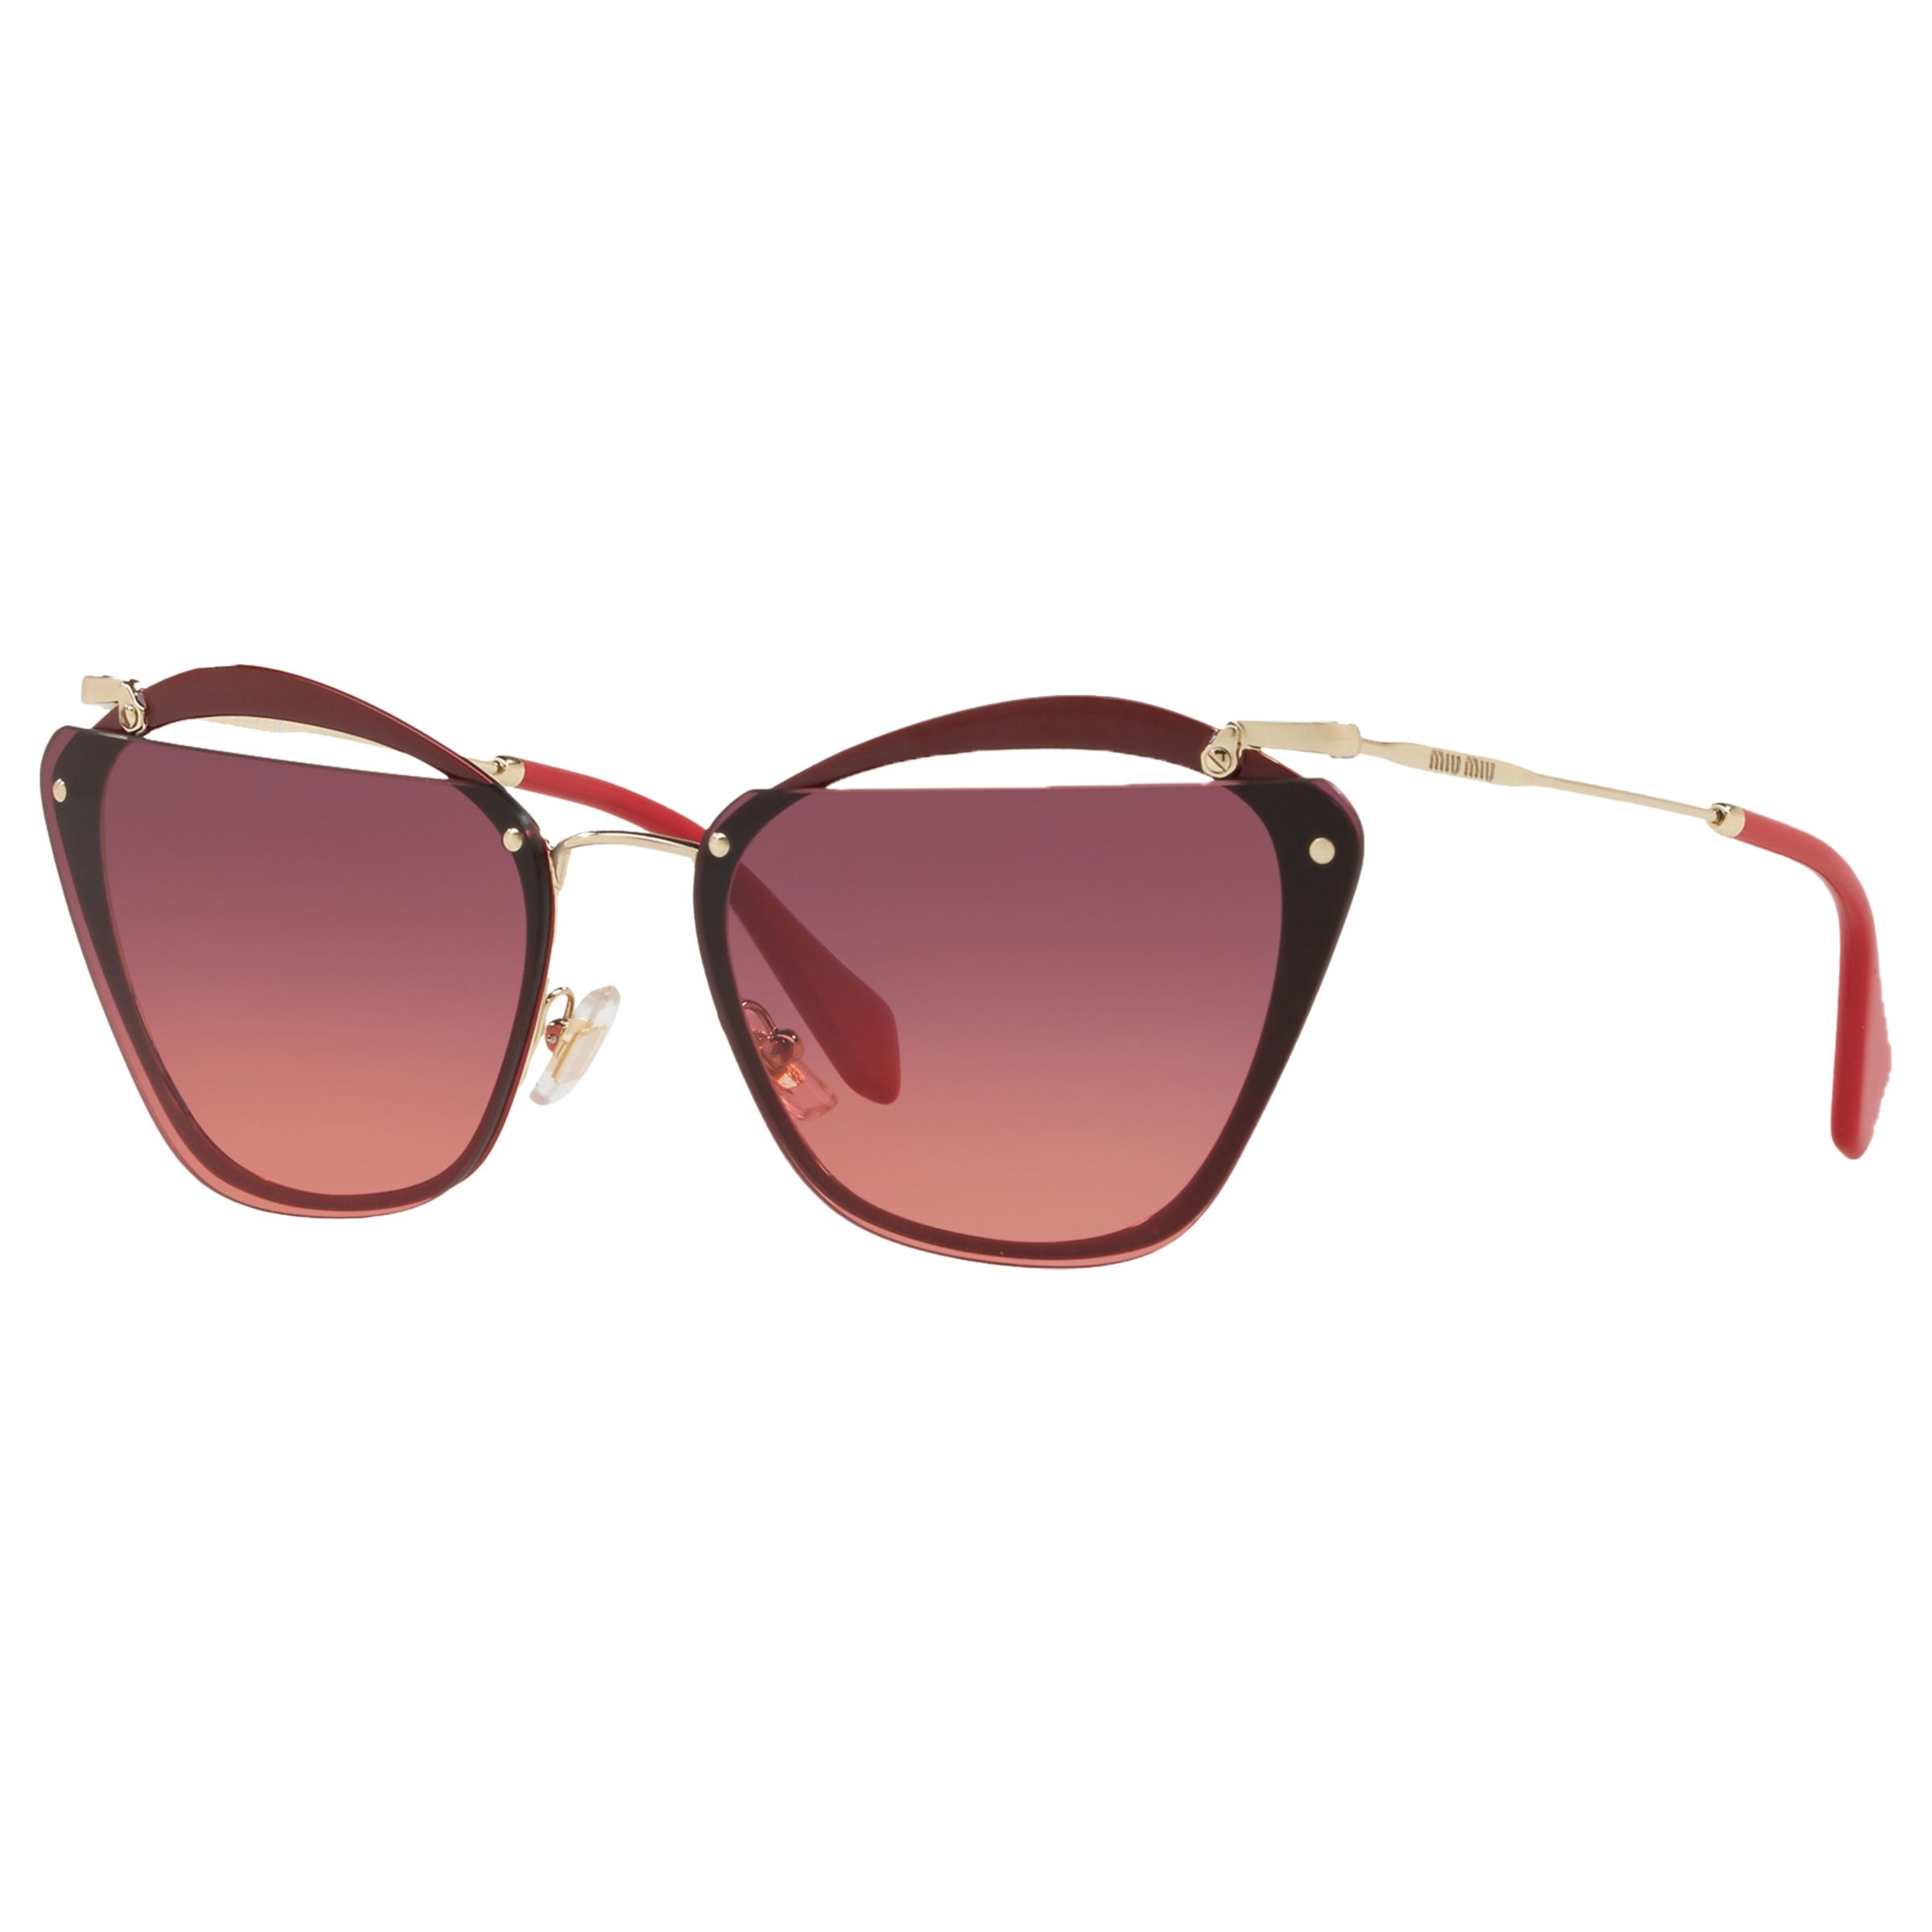 Miu Miu Miu Miu MU54TS Polarised Square Sunglasses, Red/Gold